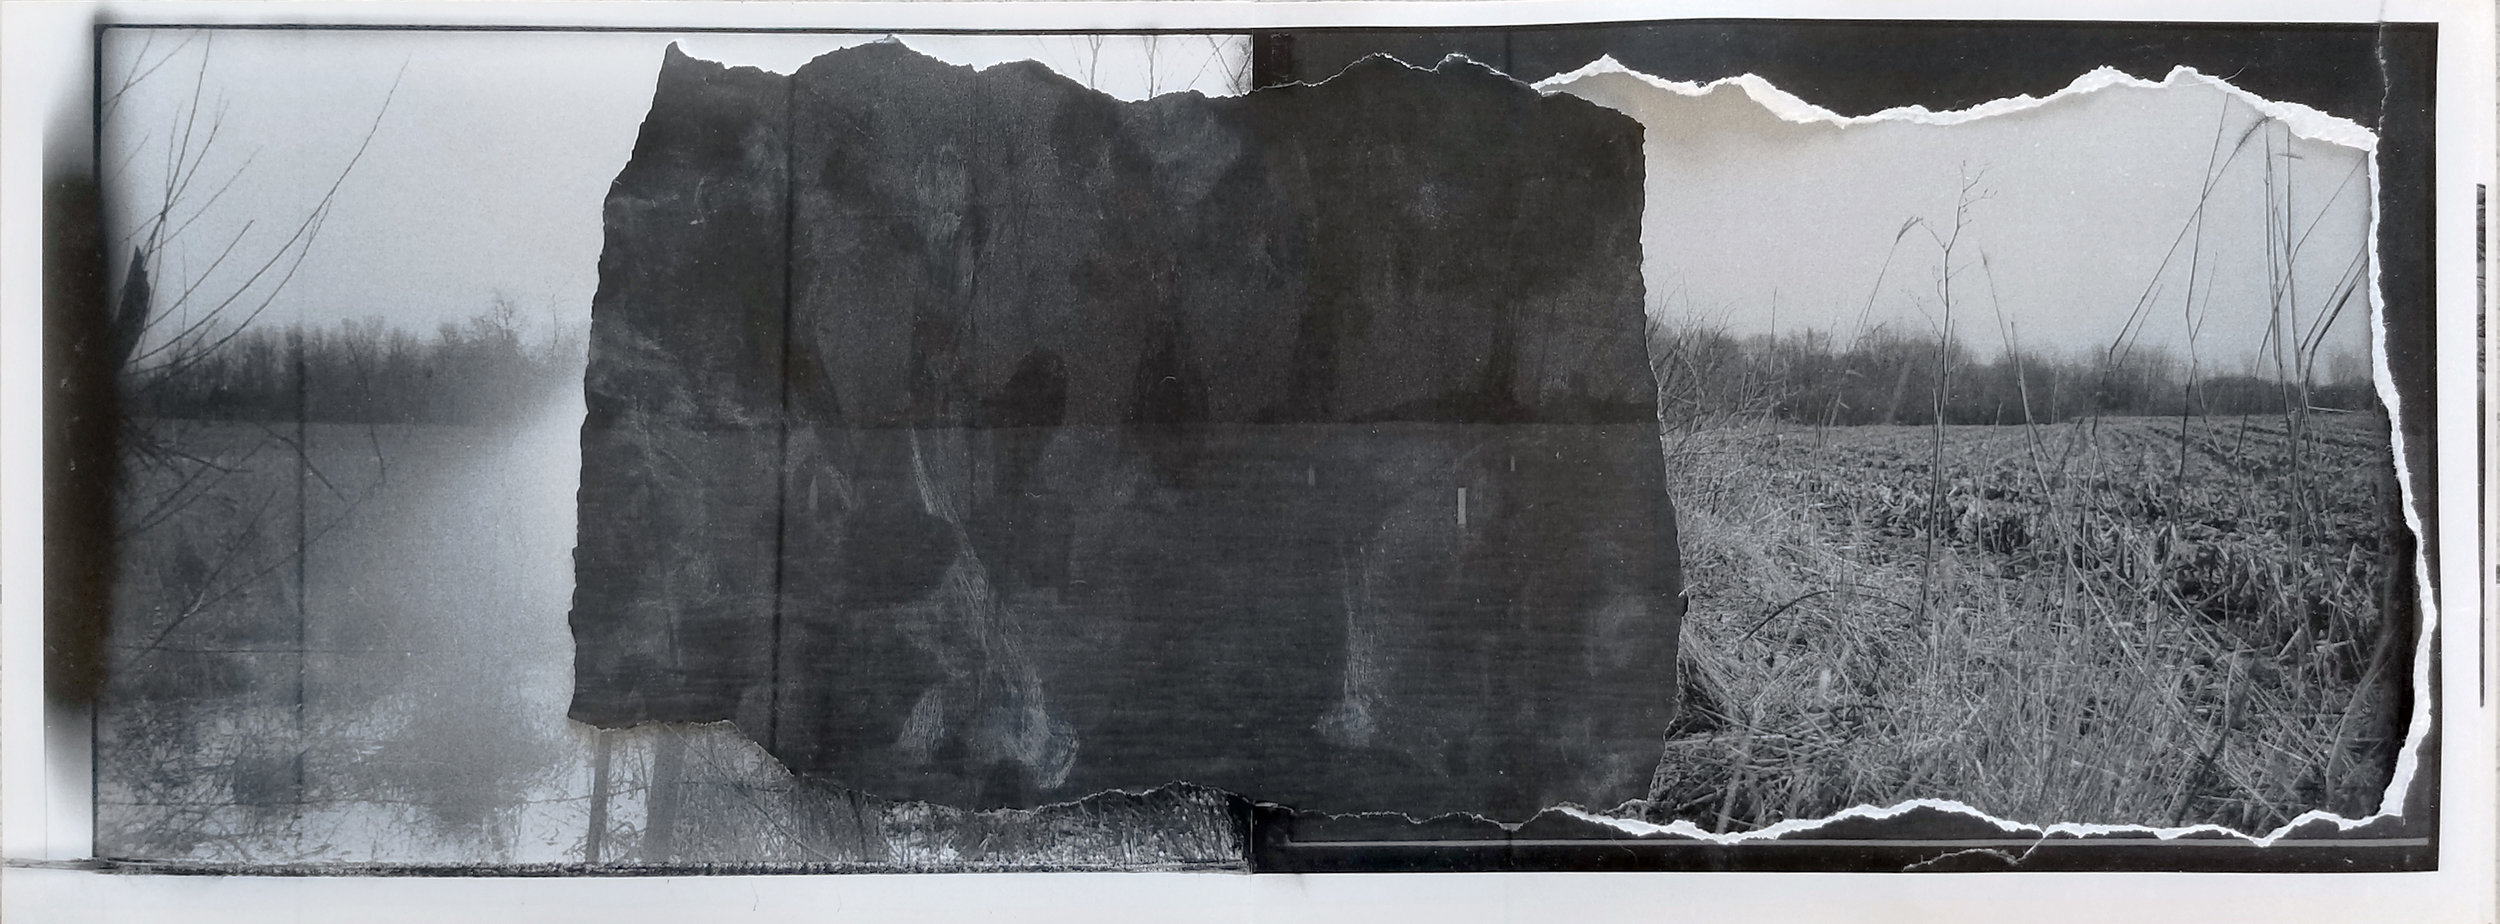 "Borrowing the Past   2019 laser prints, drywall dust, transparent tape, photo paper 7 3/4"" x 21 1/2"""